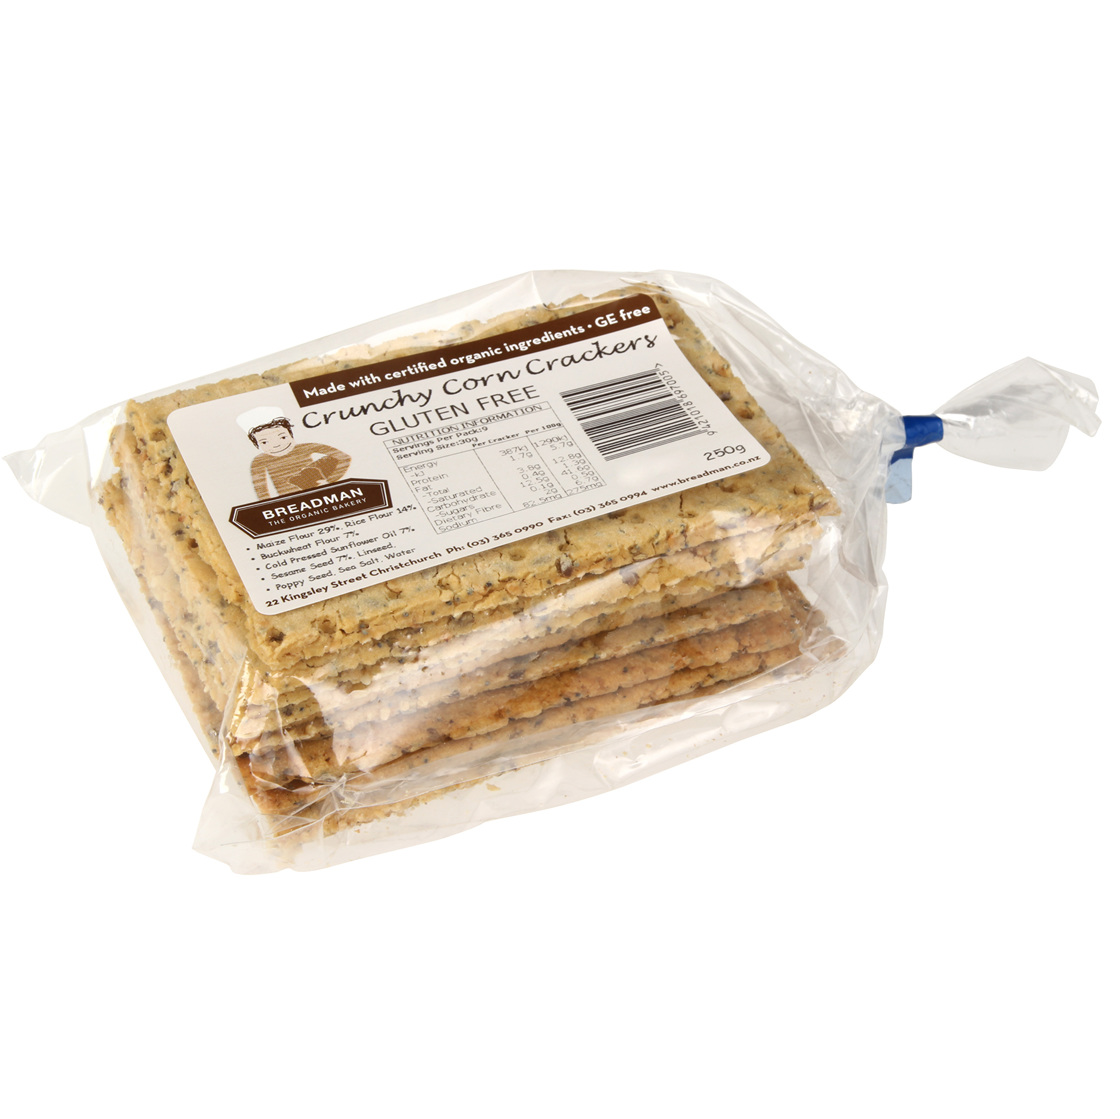 corn crackers bagged